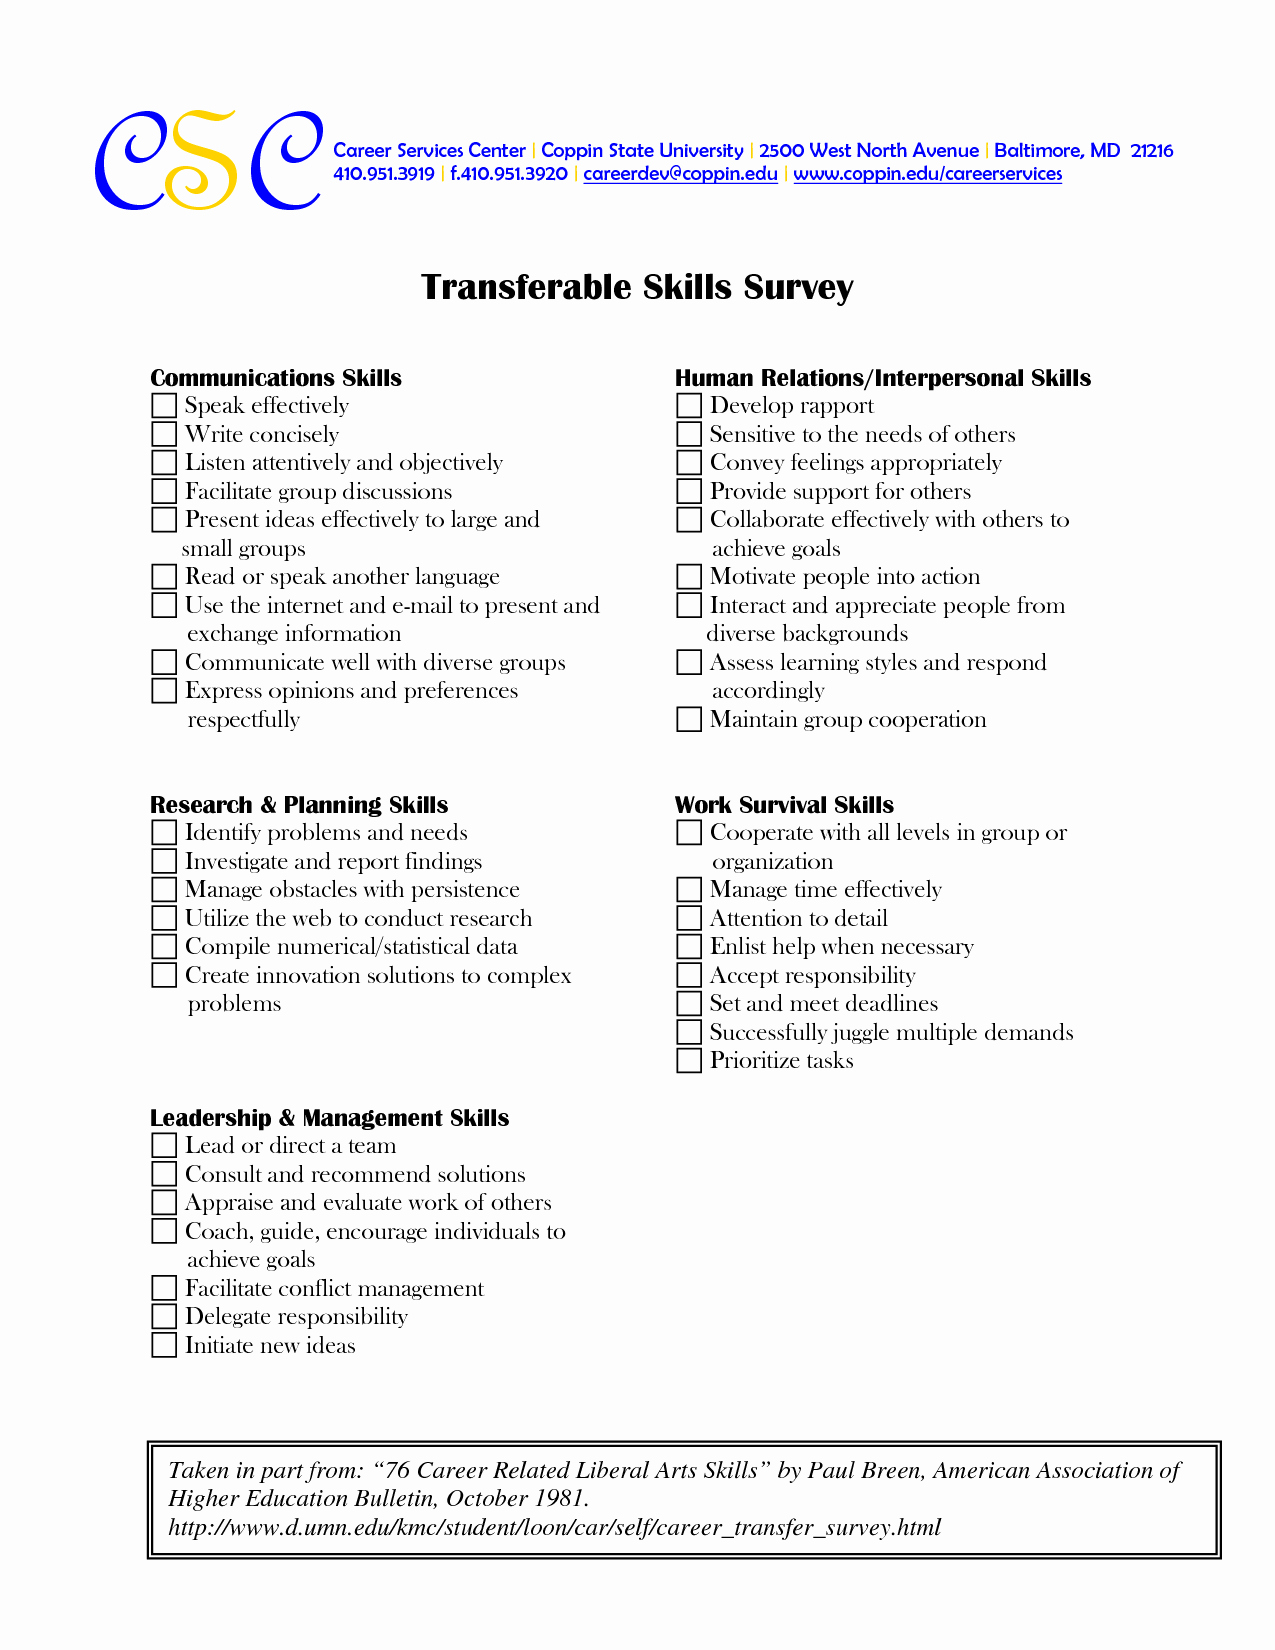 Job Skills assessment Worksheet Awesome 17 Best Of Career Skills Worksheets Job Skills